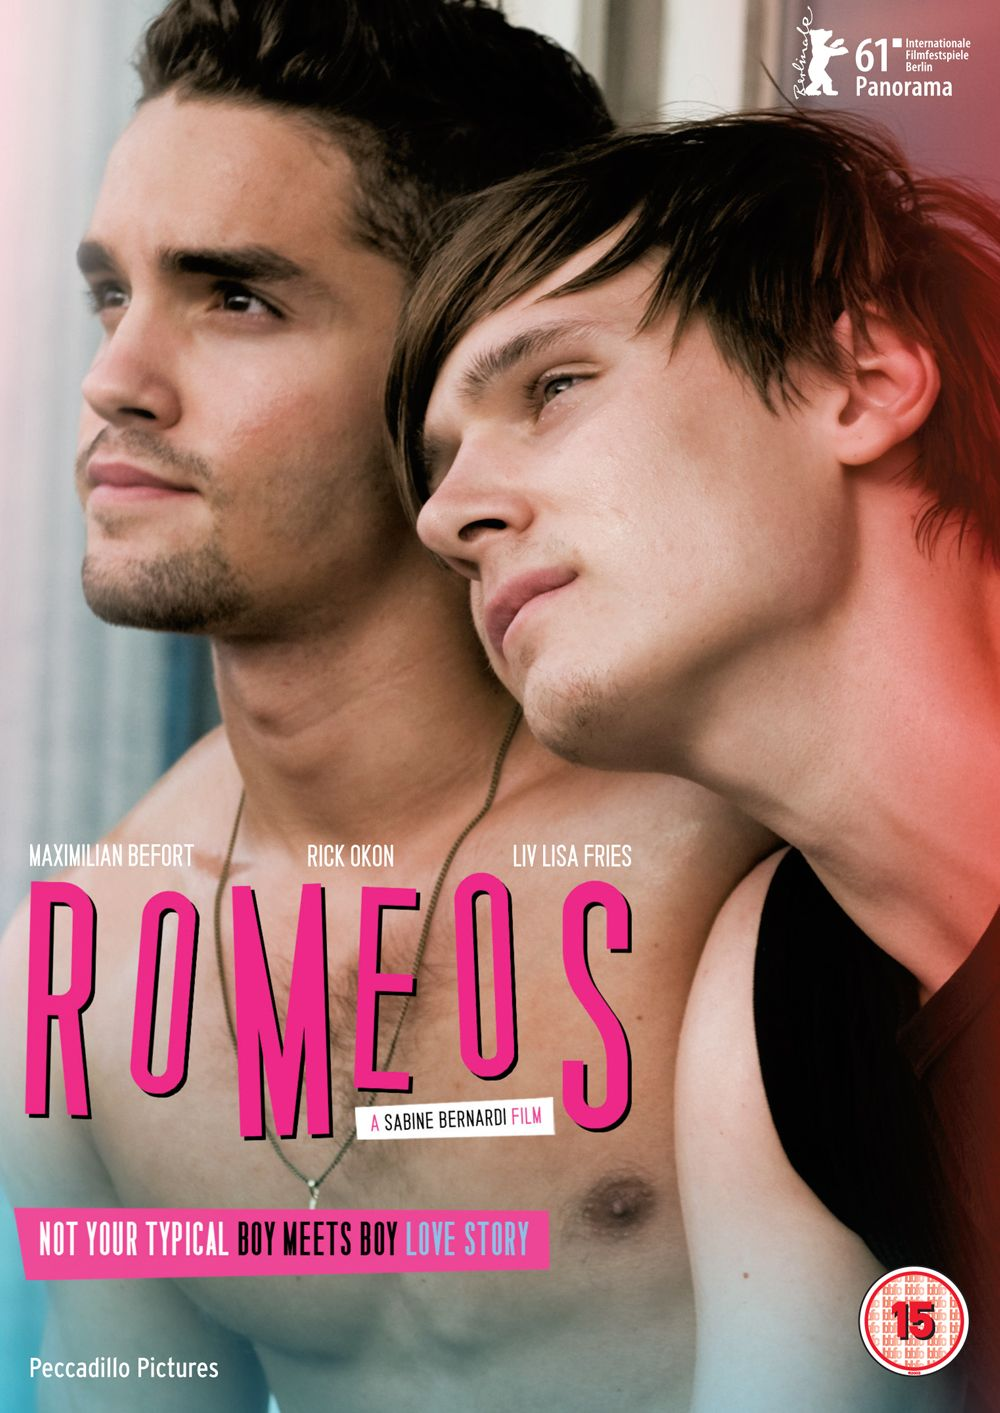 Romeos Dvd Romeos Is Available On Dvd From The 2 Nd July And